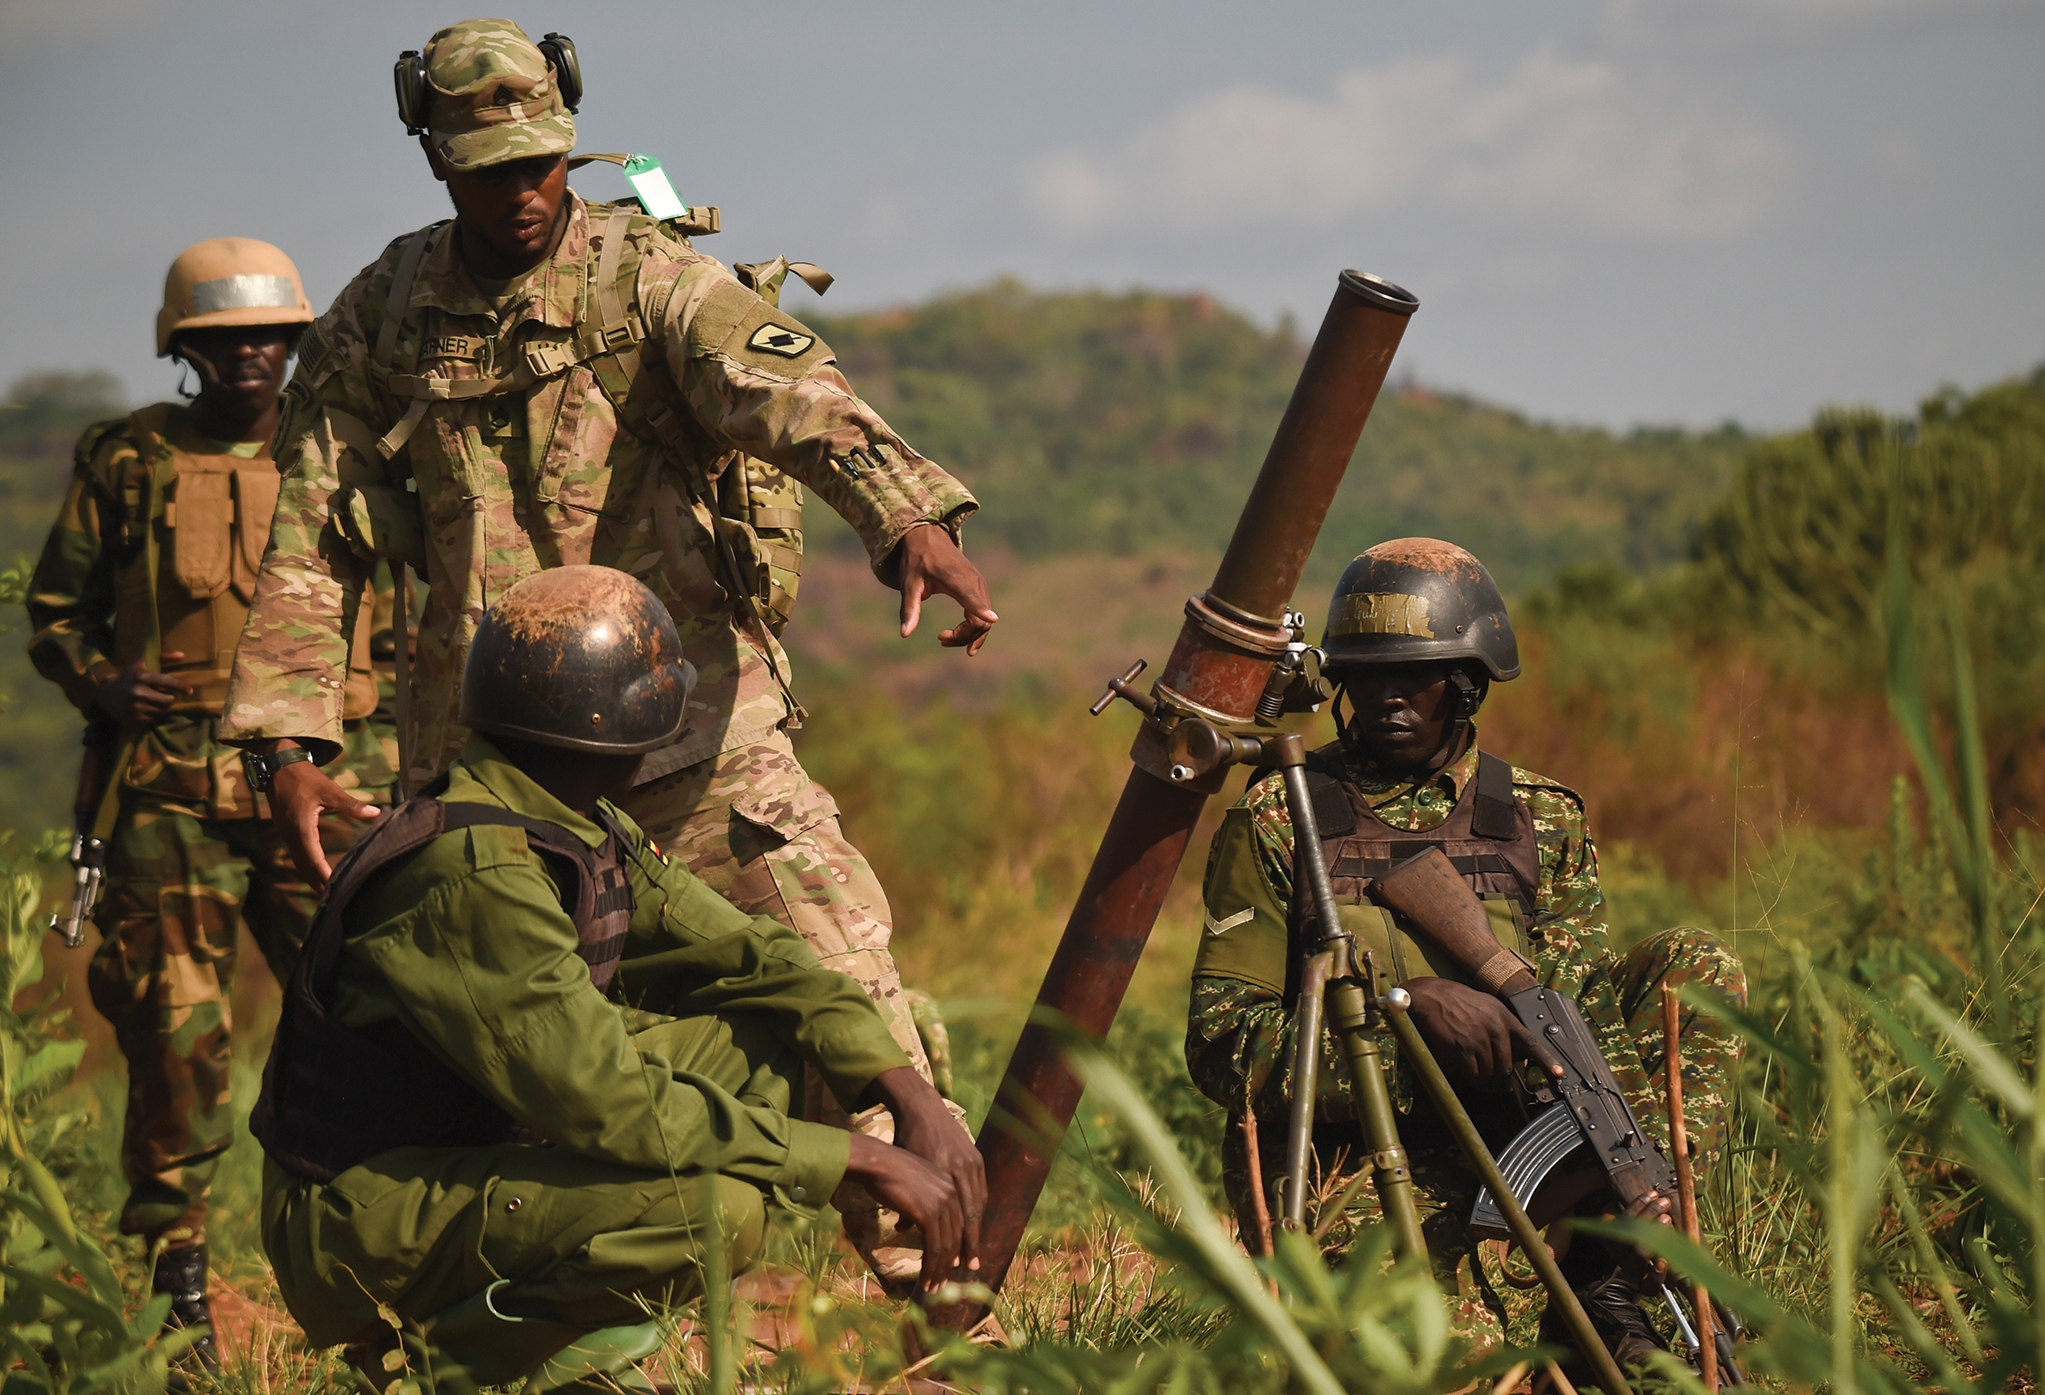 U.S. Army Staff Sgt. John Garner assists Ugandan forces during live-fire mortar training in Uganda